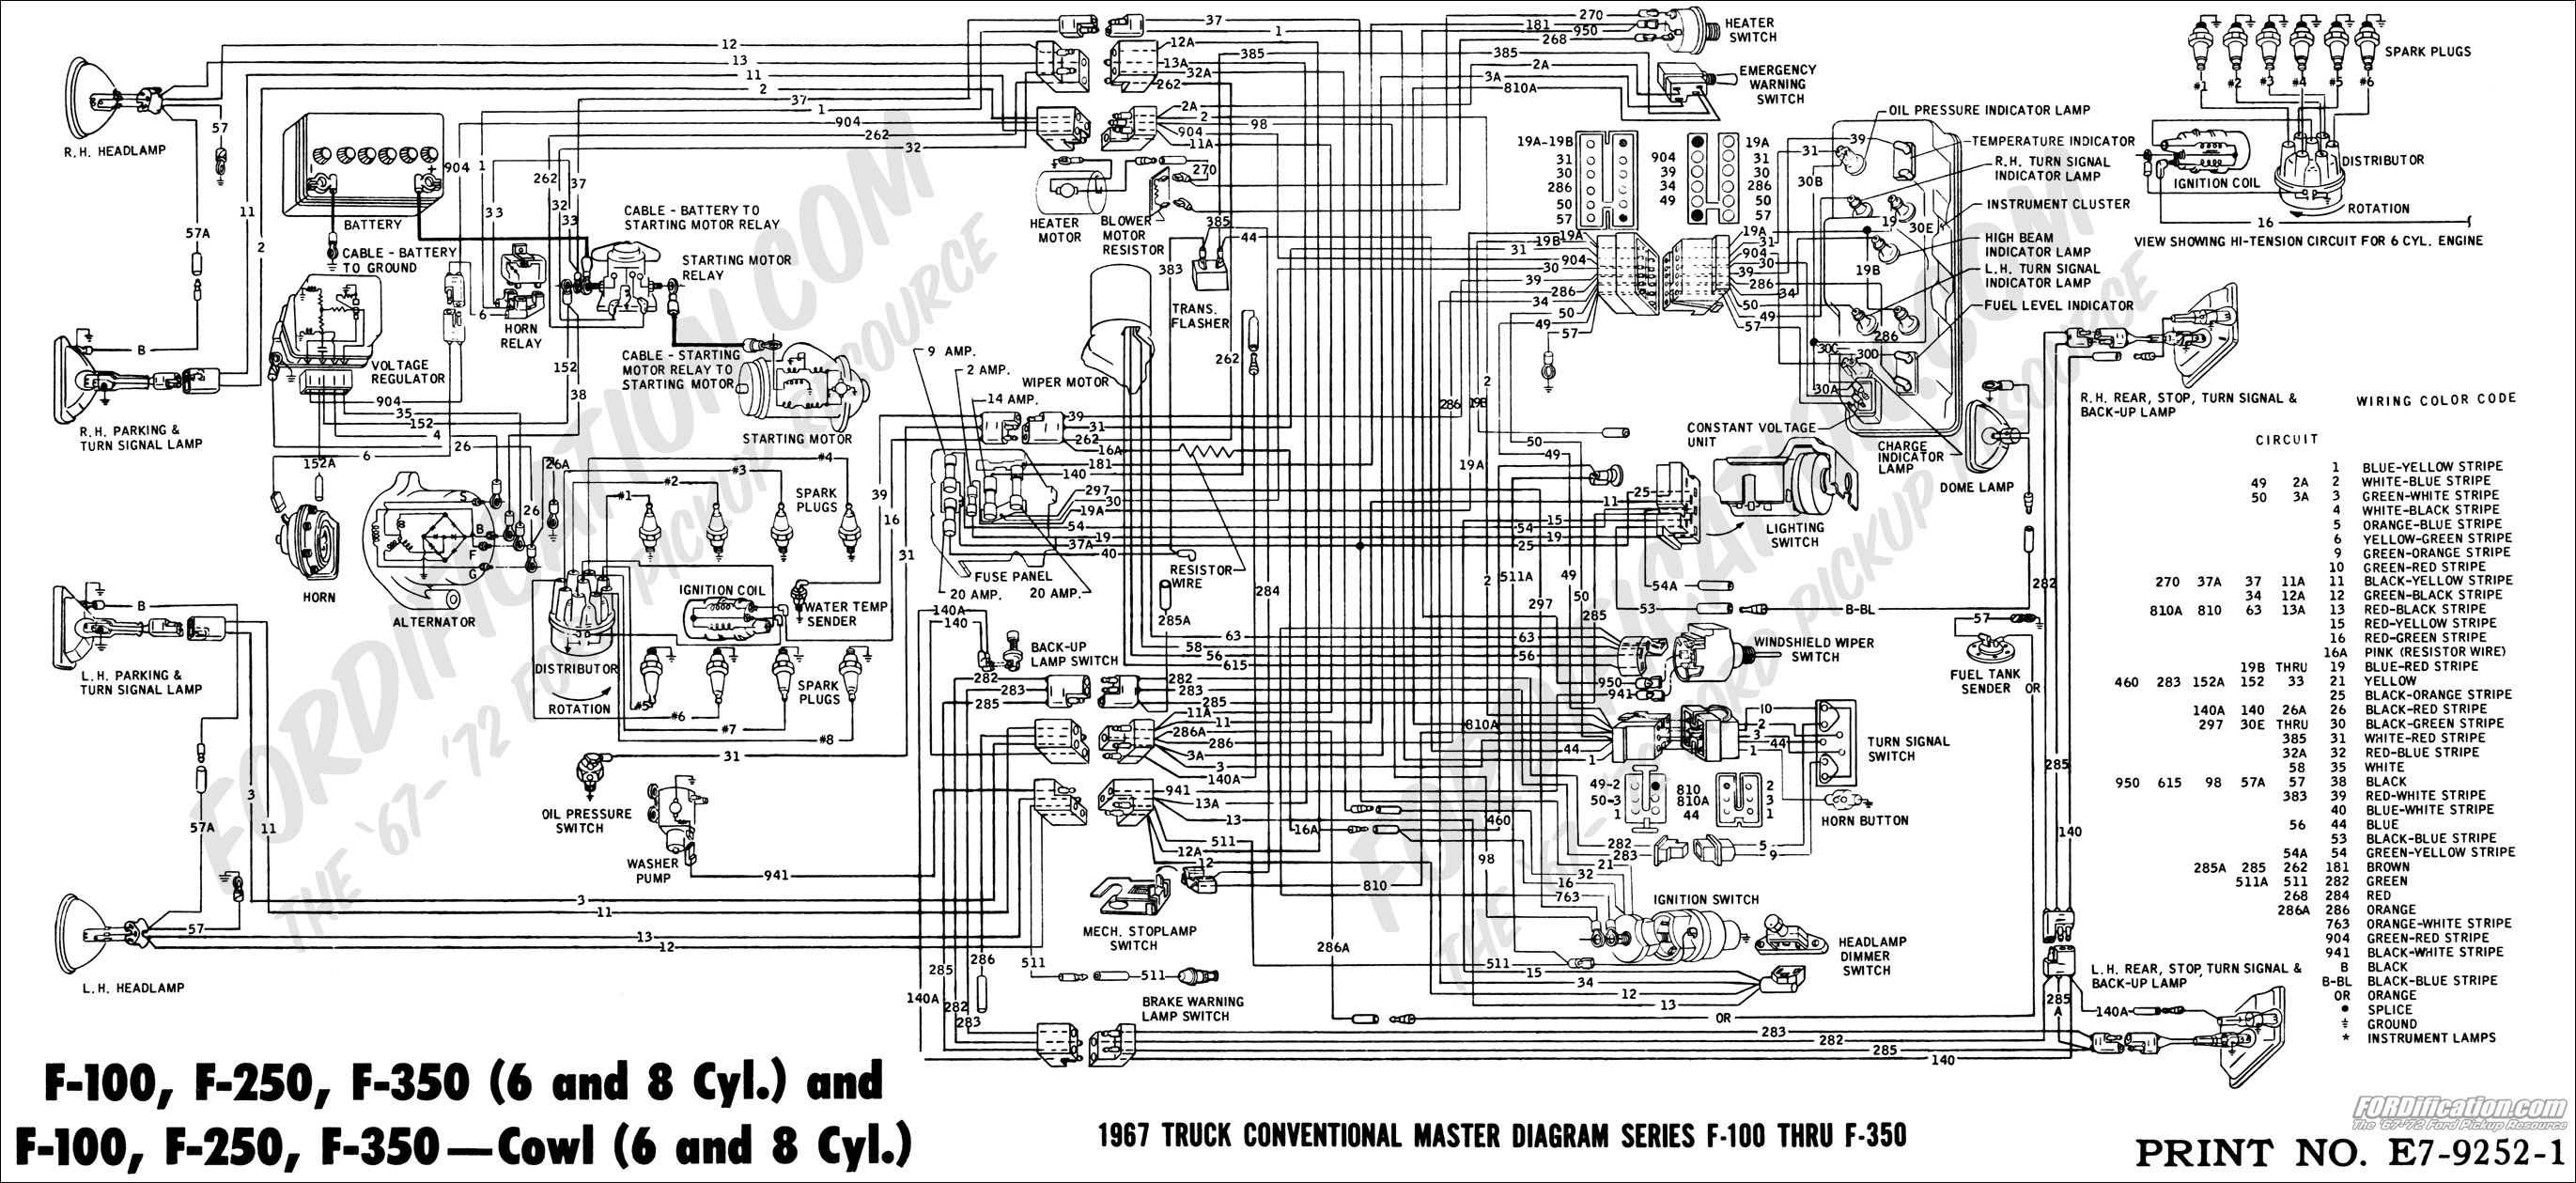 1995 ford f150 wiring harness - universal wiring diagrams cable-realize -  cable-realize.sceglicongusto.it  sceglicongusto.it